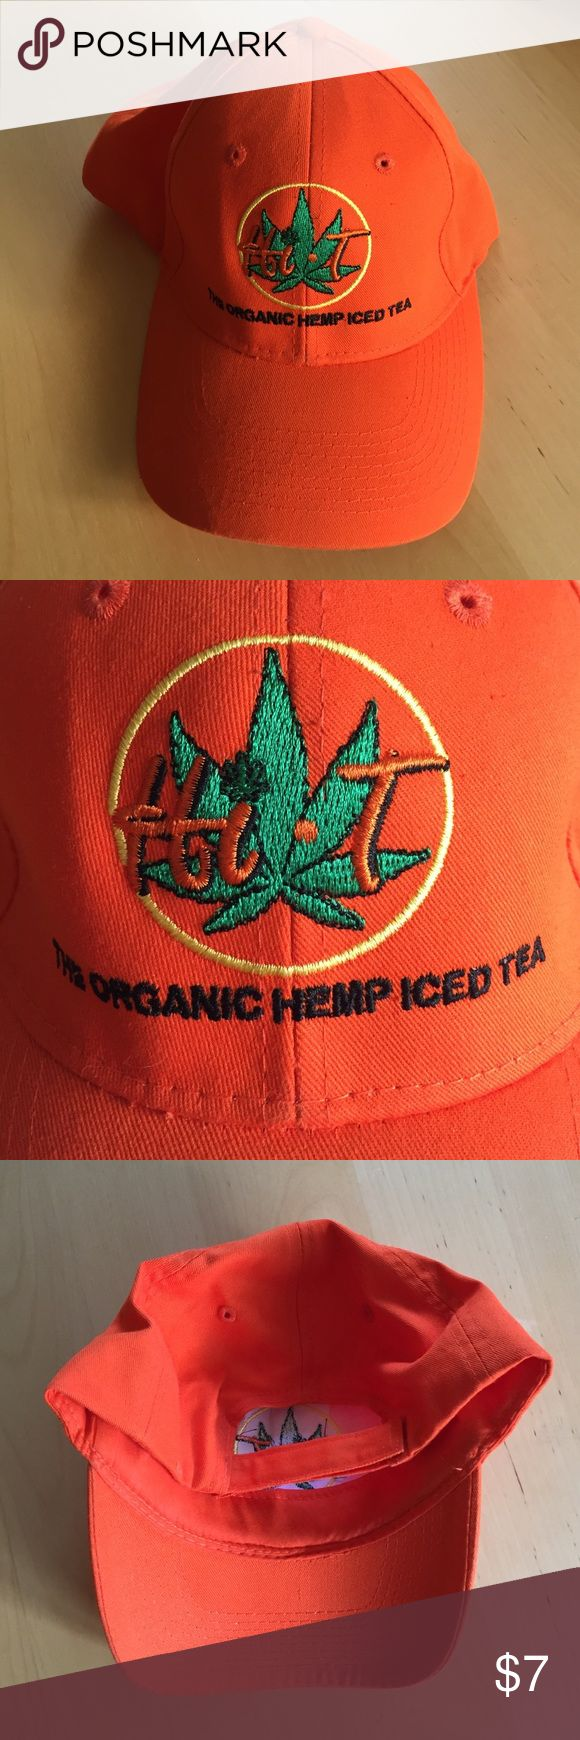 """hi-t"" bright orange hat ""The organic hemp iced tea"" hat with Velcro back Accessories Hats"